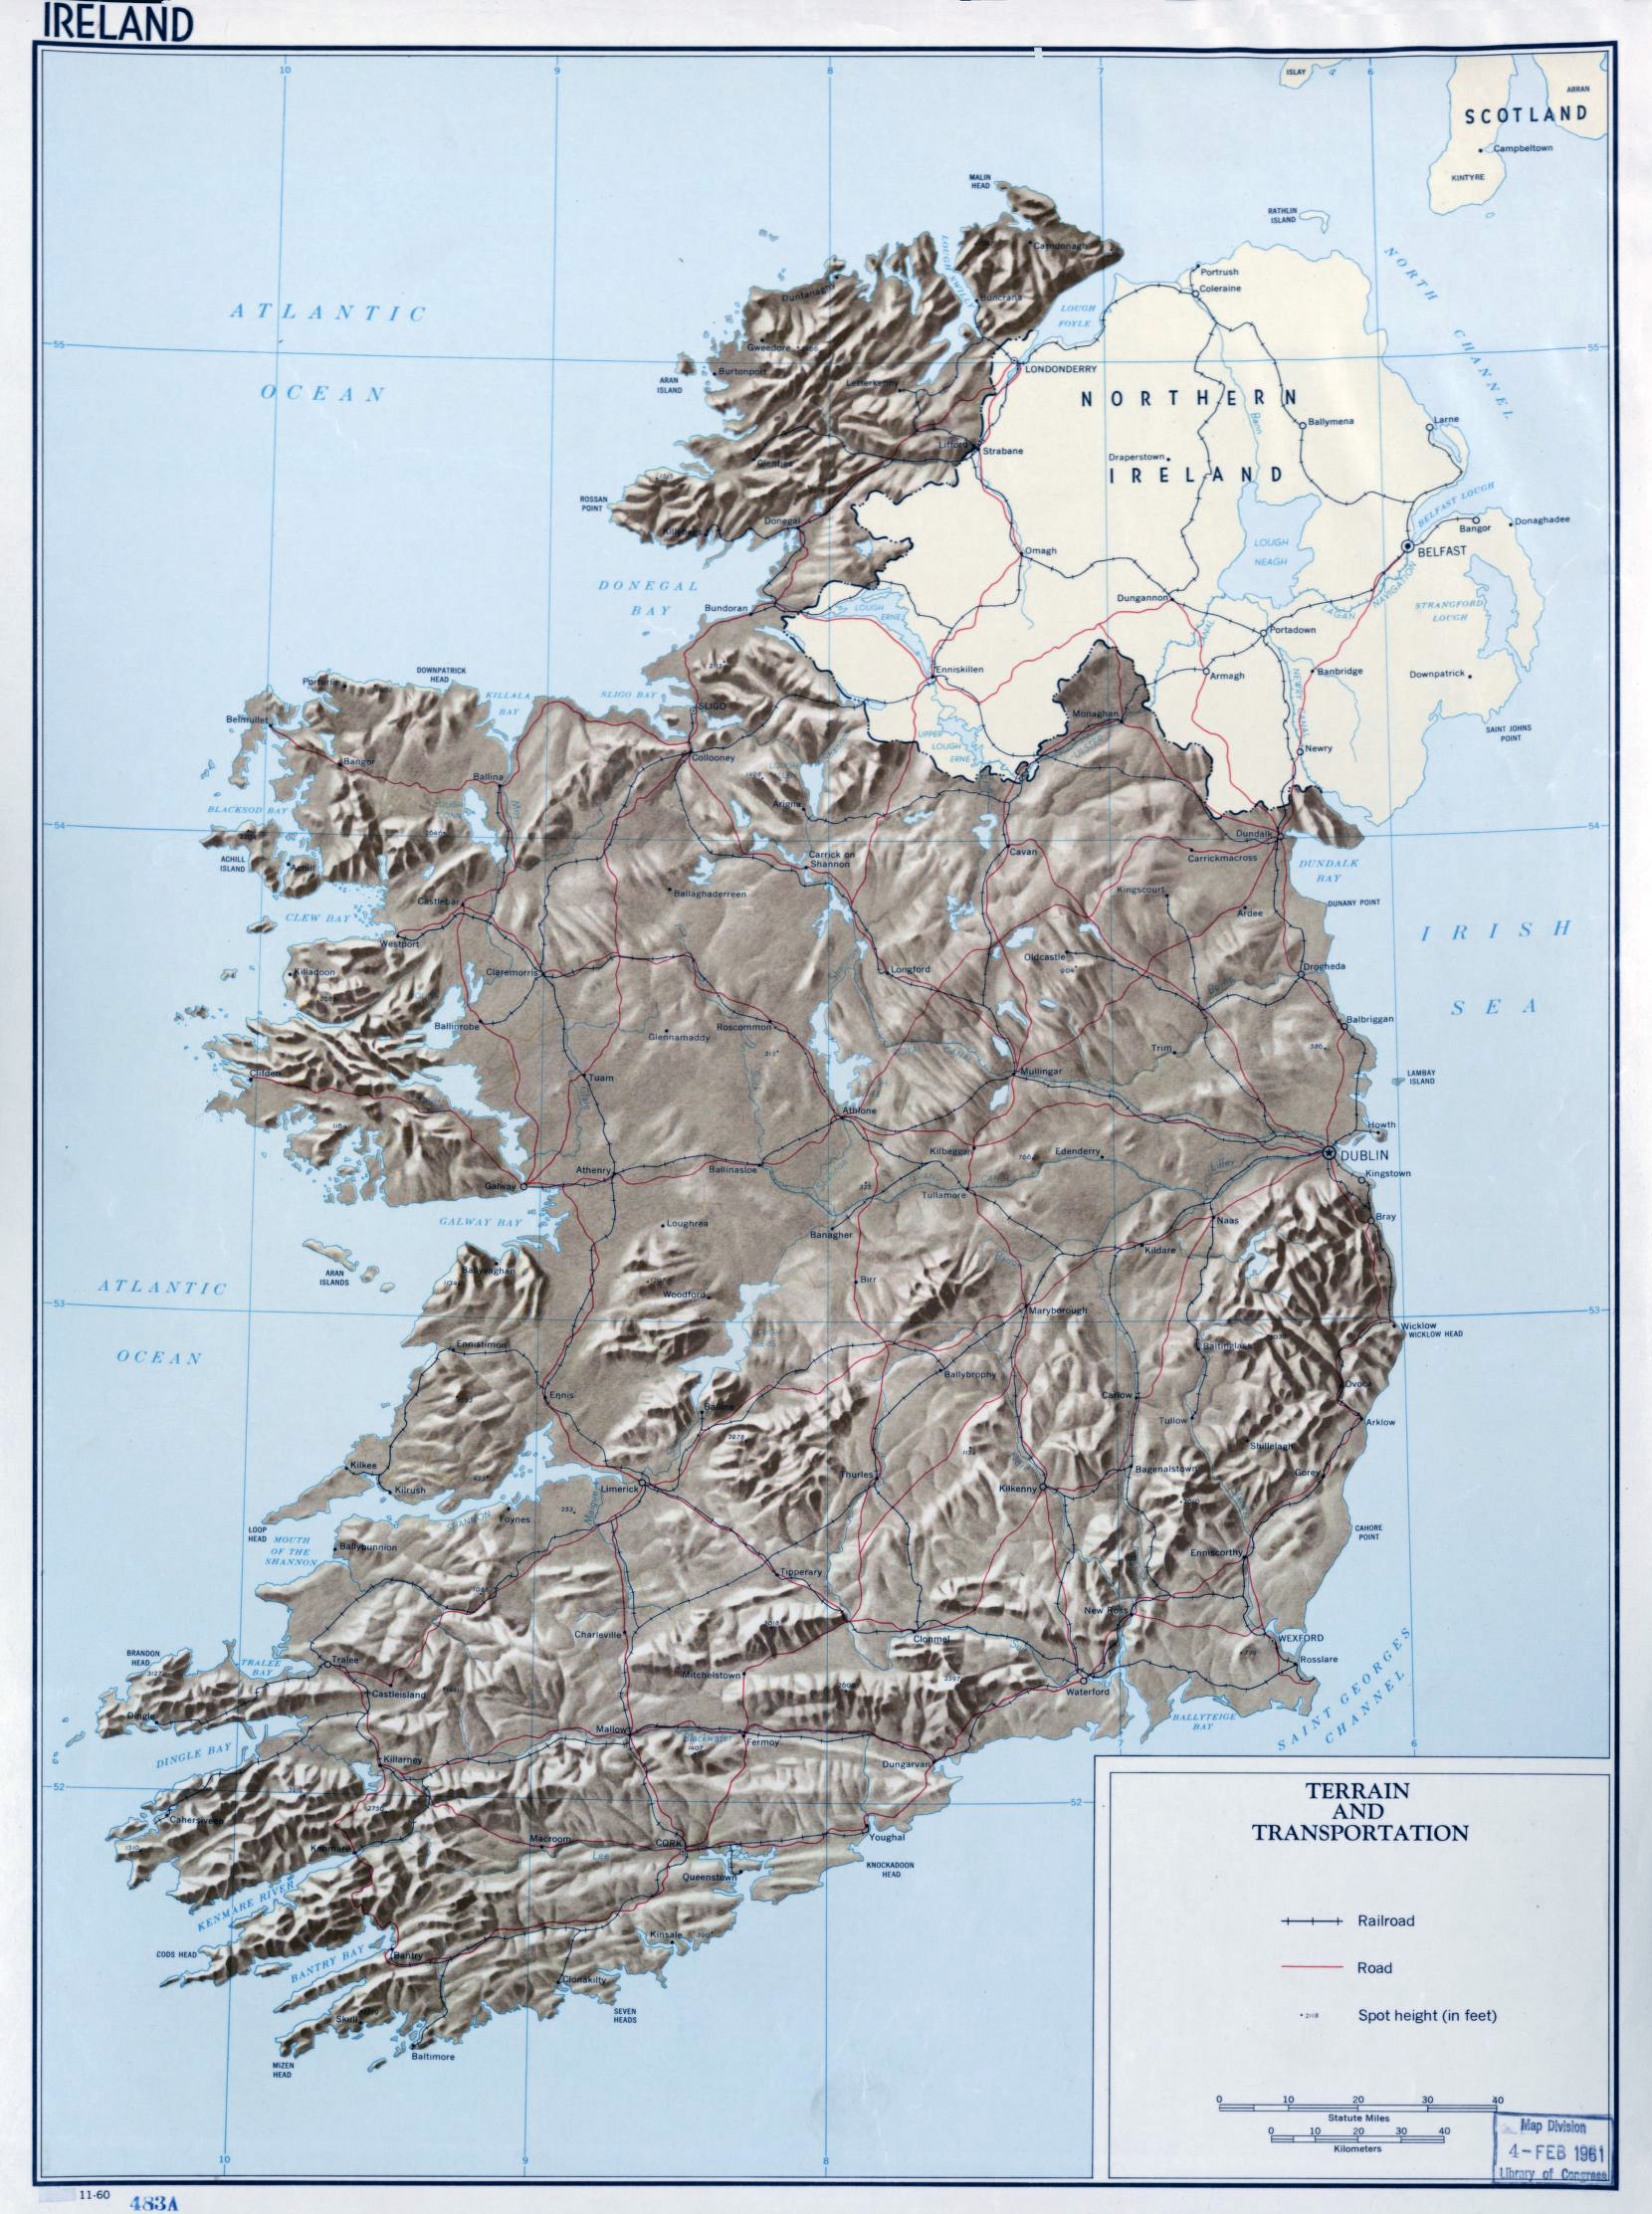 Large Detailed Terrain And Transportation Map Of Ireland 1960